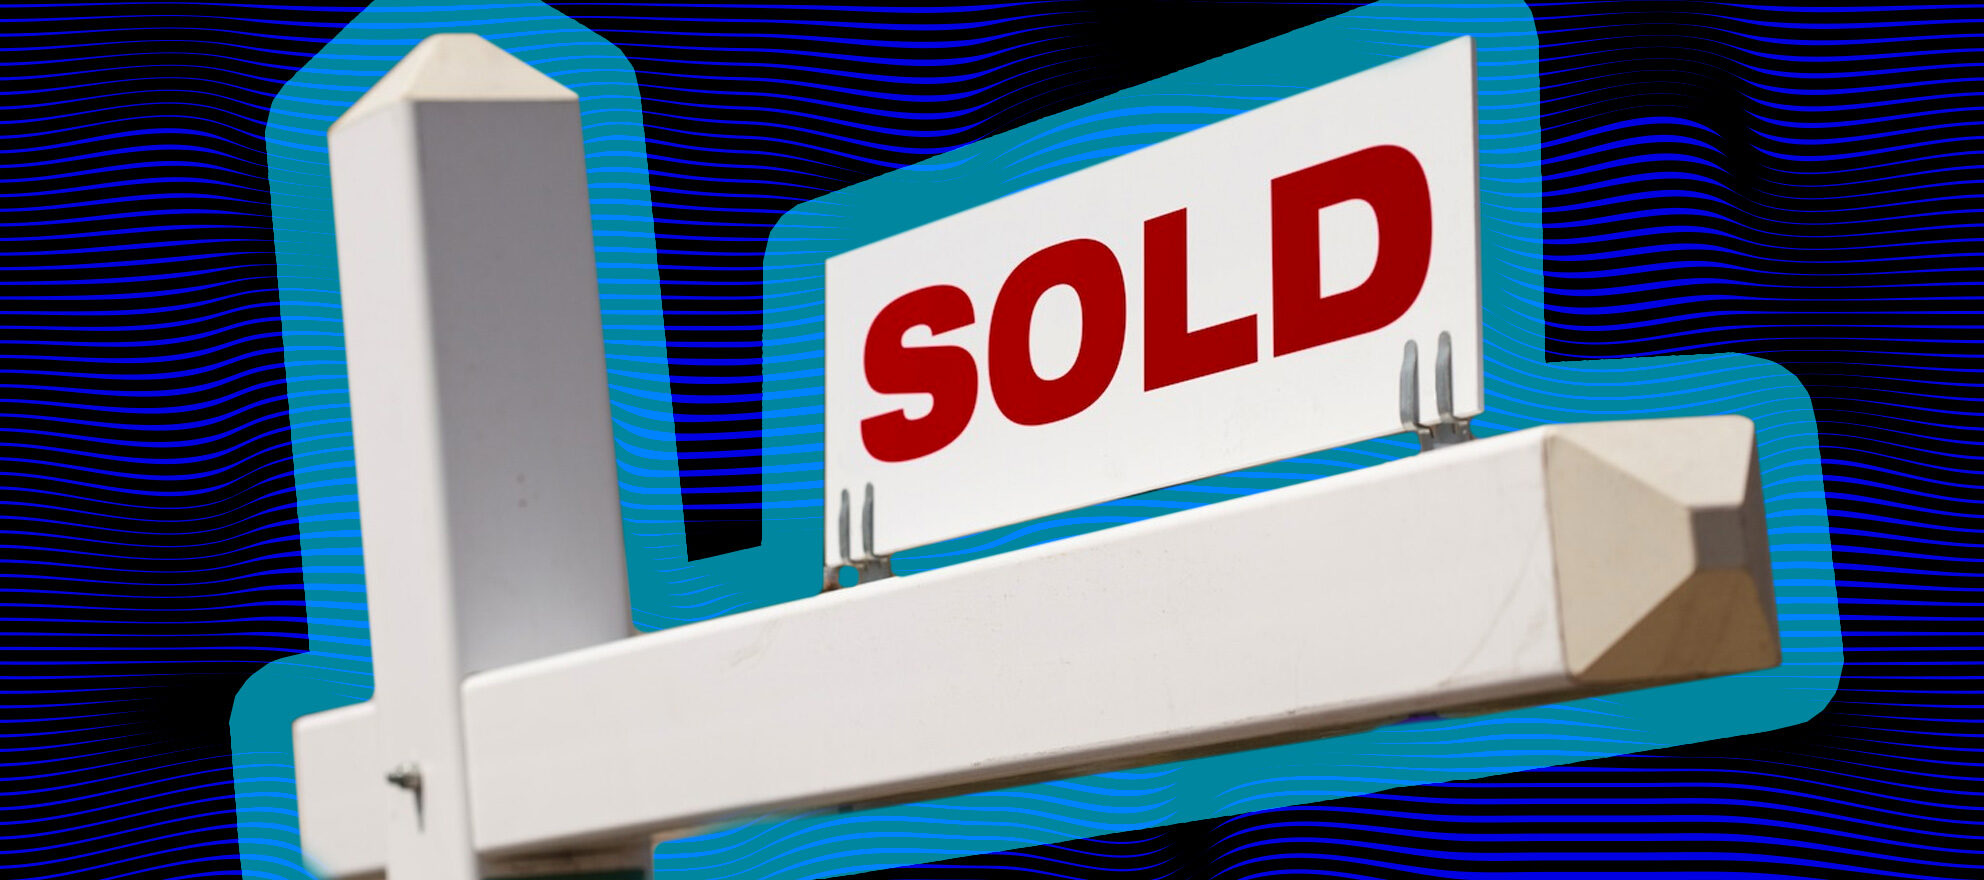 Sellers: Don't even think about listing till you answer these 10 questions